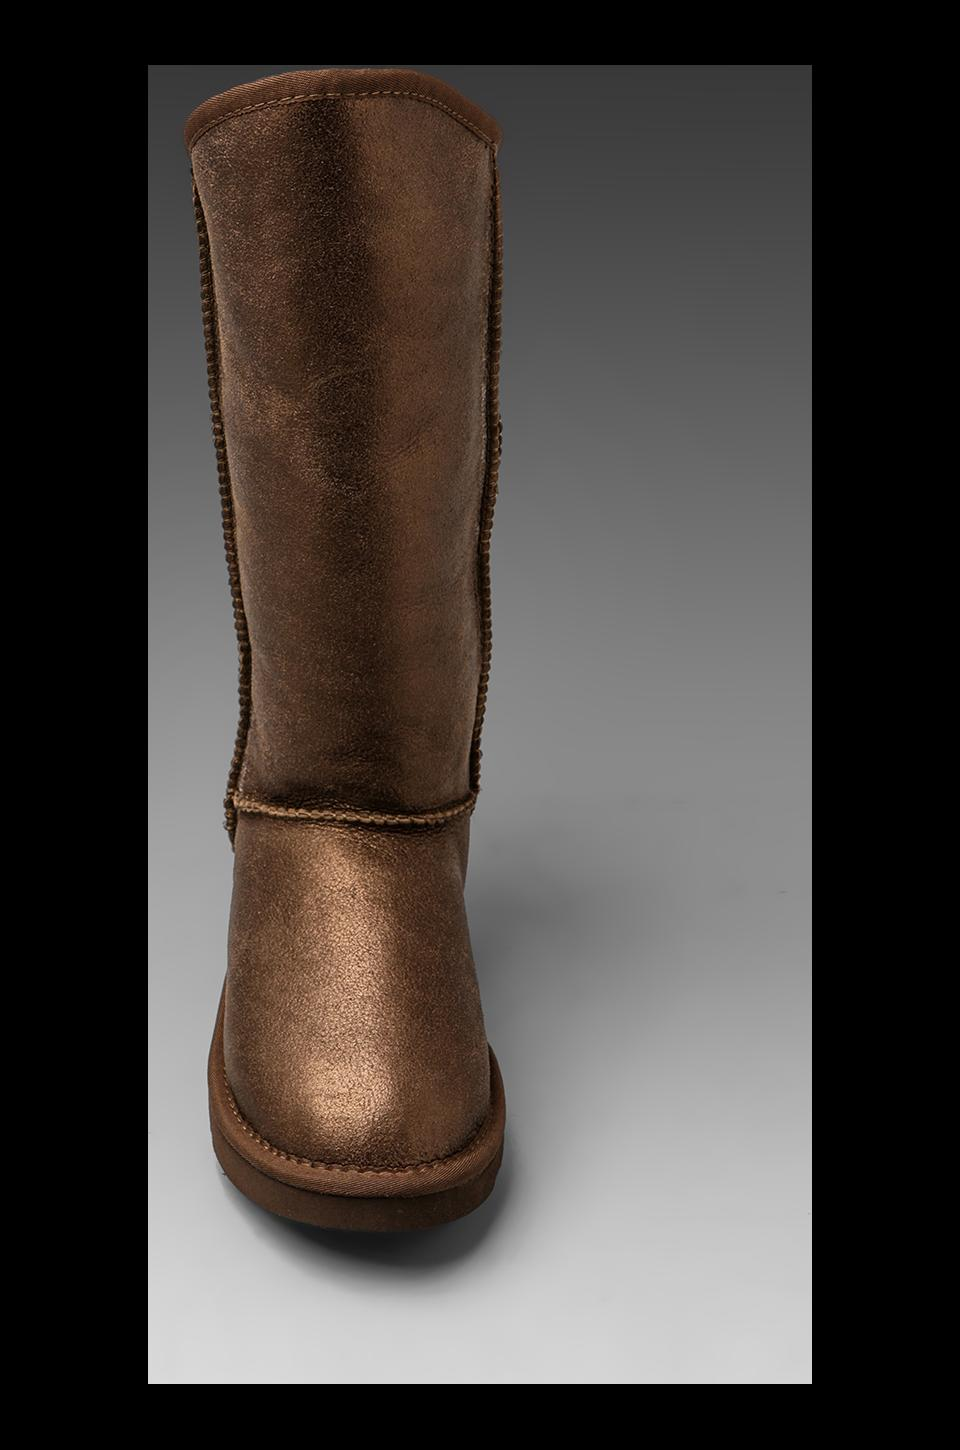 Australia Luxe Collective Cosy Tall Vintage Metallic Boot in Bronze